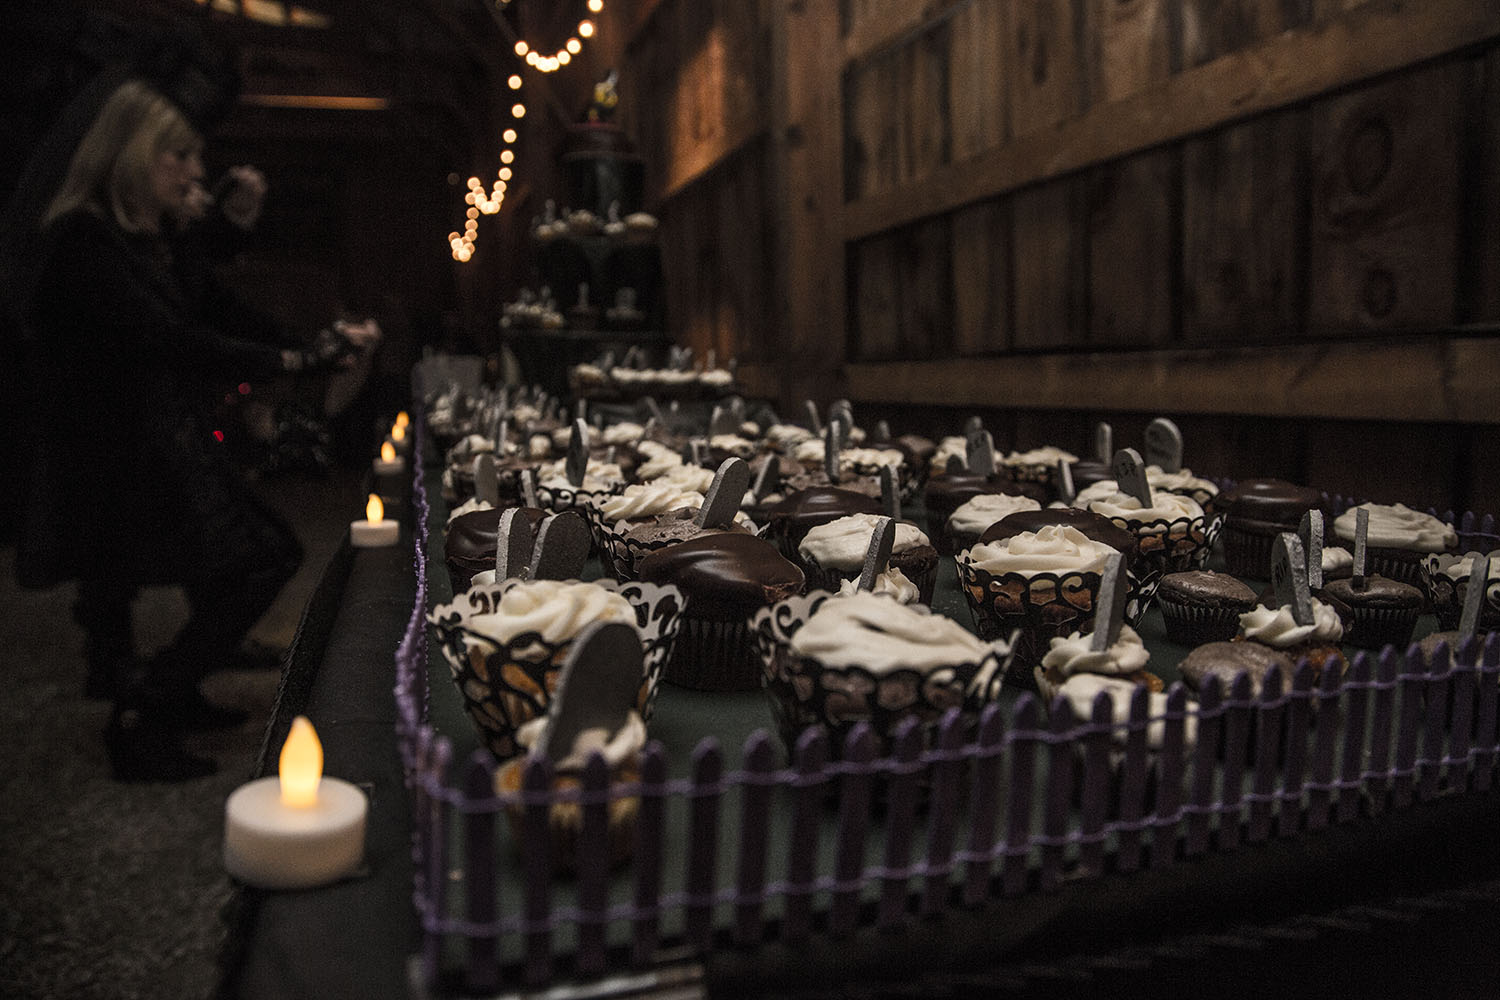 Beth Amp Brians Spooky Amp Spectacular Halloween Wedding To